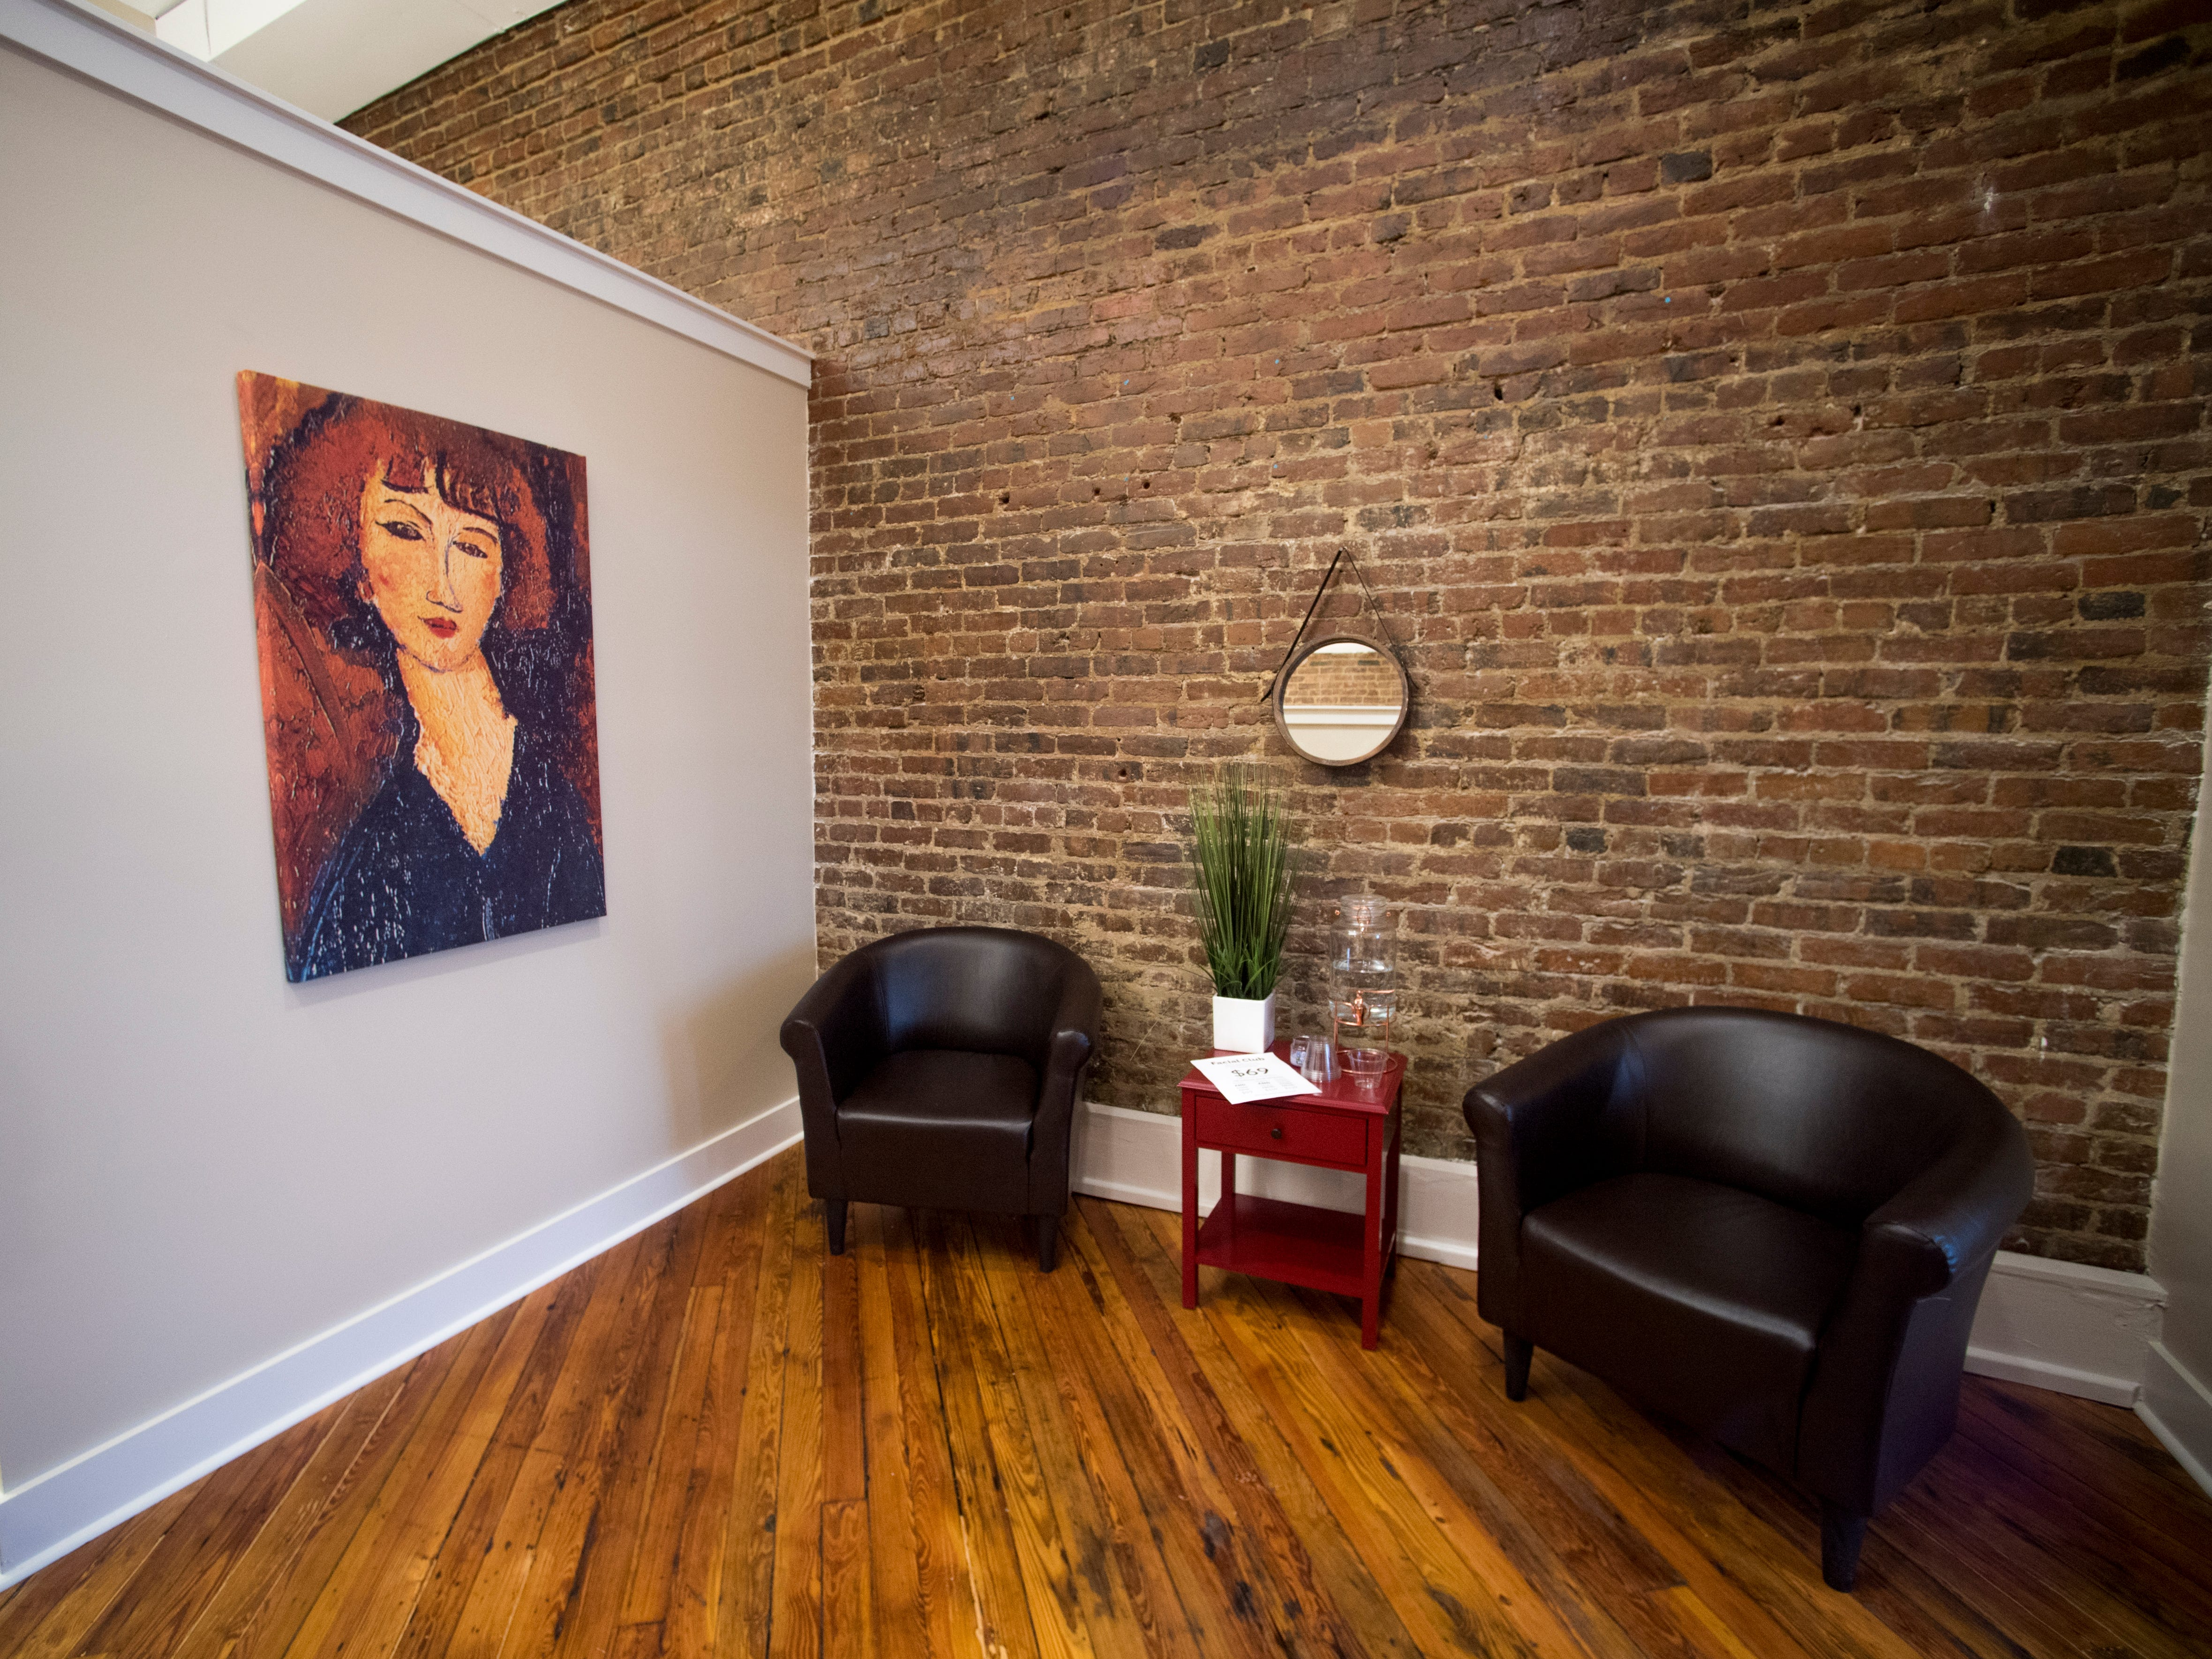 Inside the Old City MedSpa in downtown Knoxville on Monday, February 4, 2019.